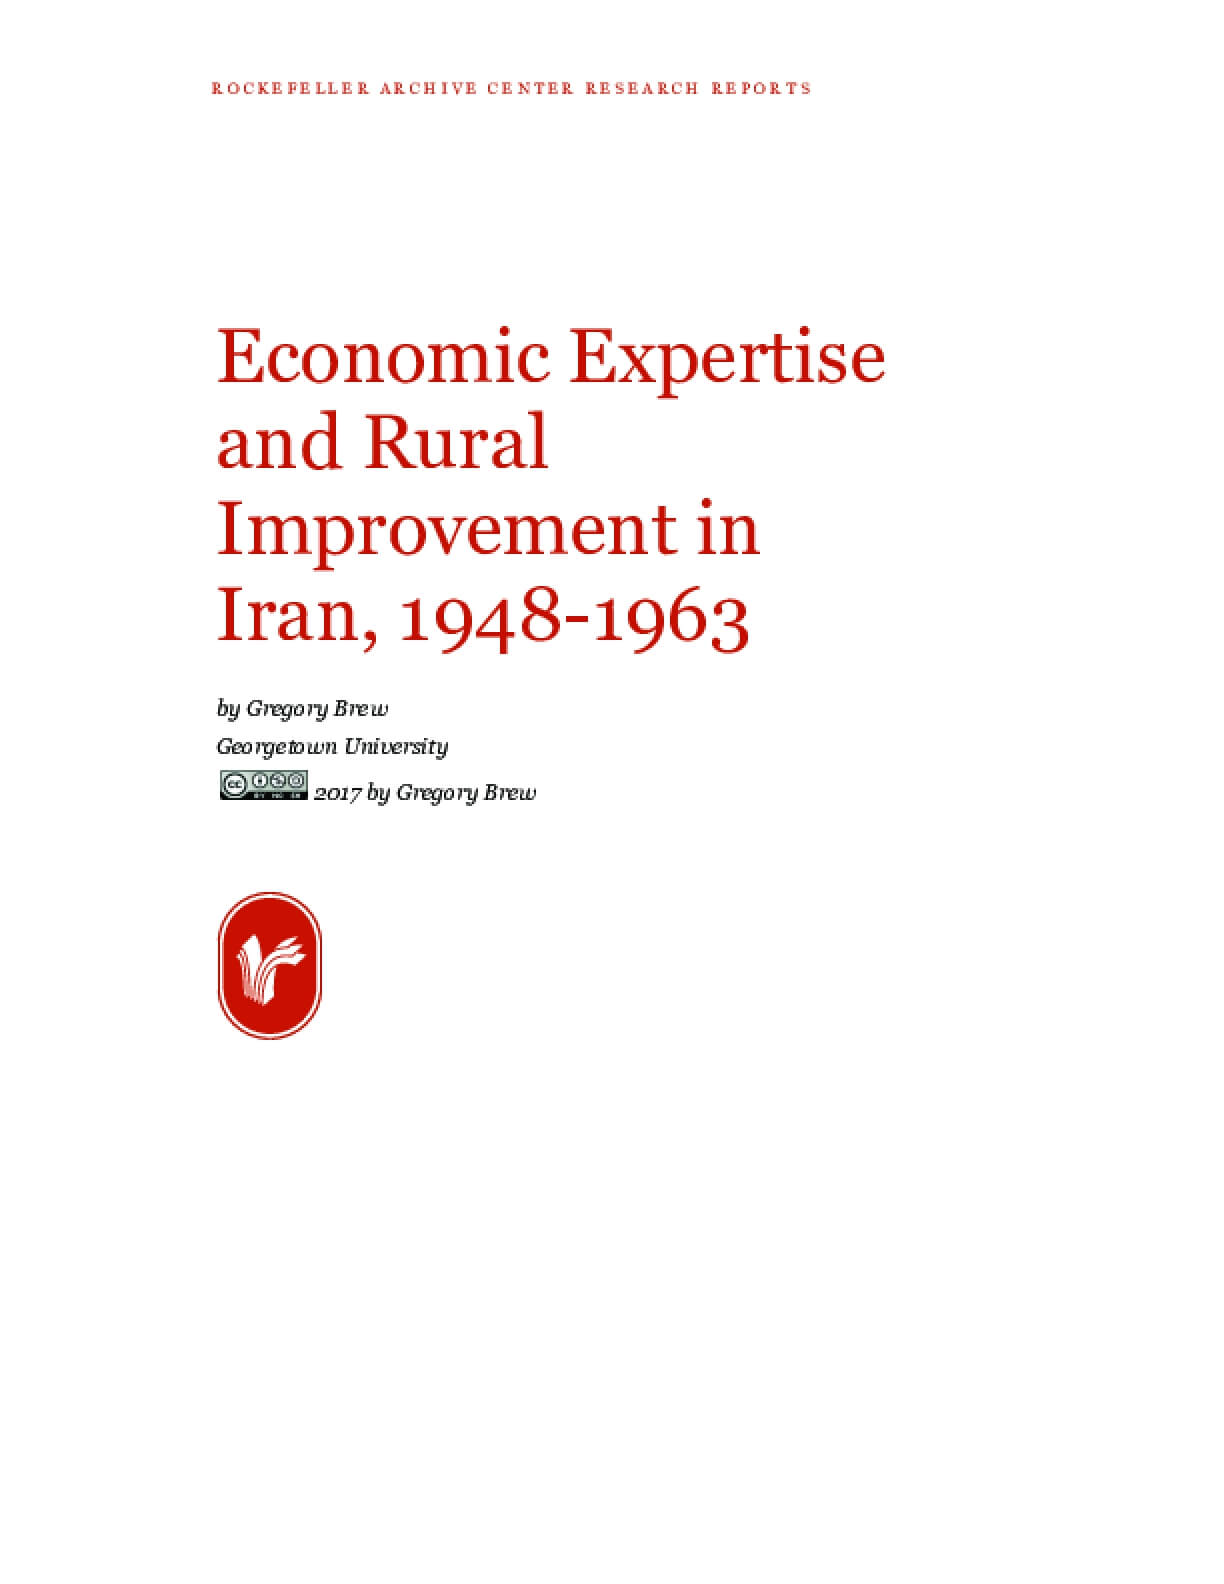 Economic Expertise and Rural Improvement in Iran, 1948-1963